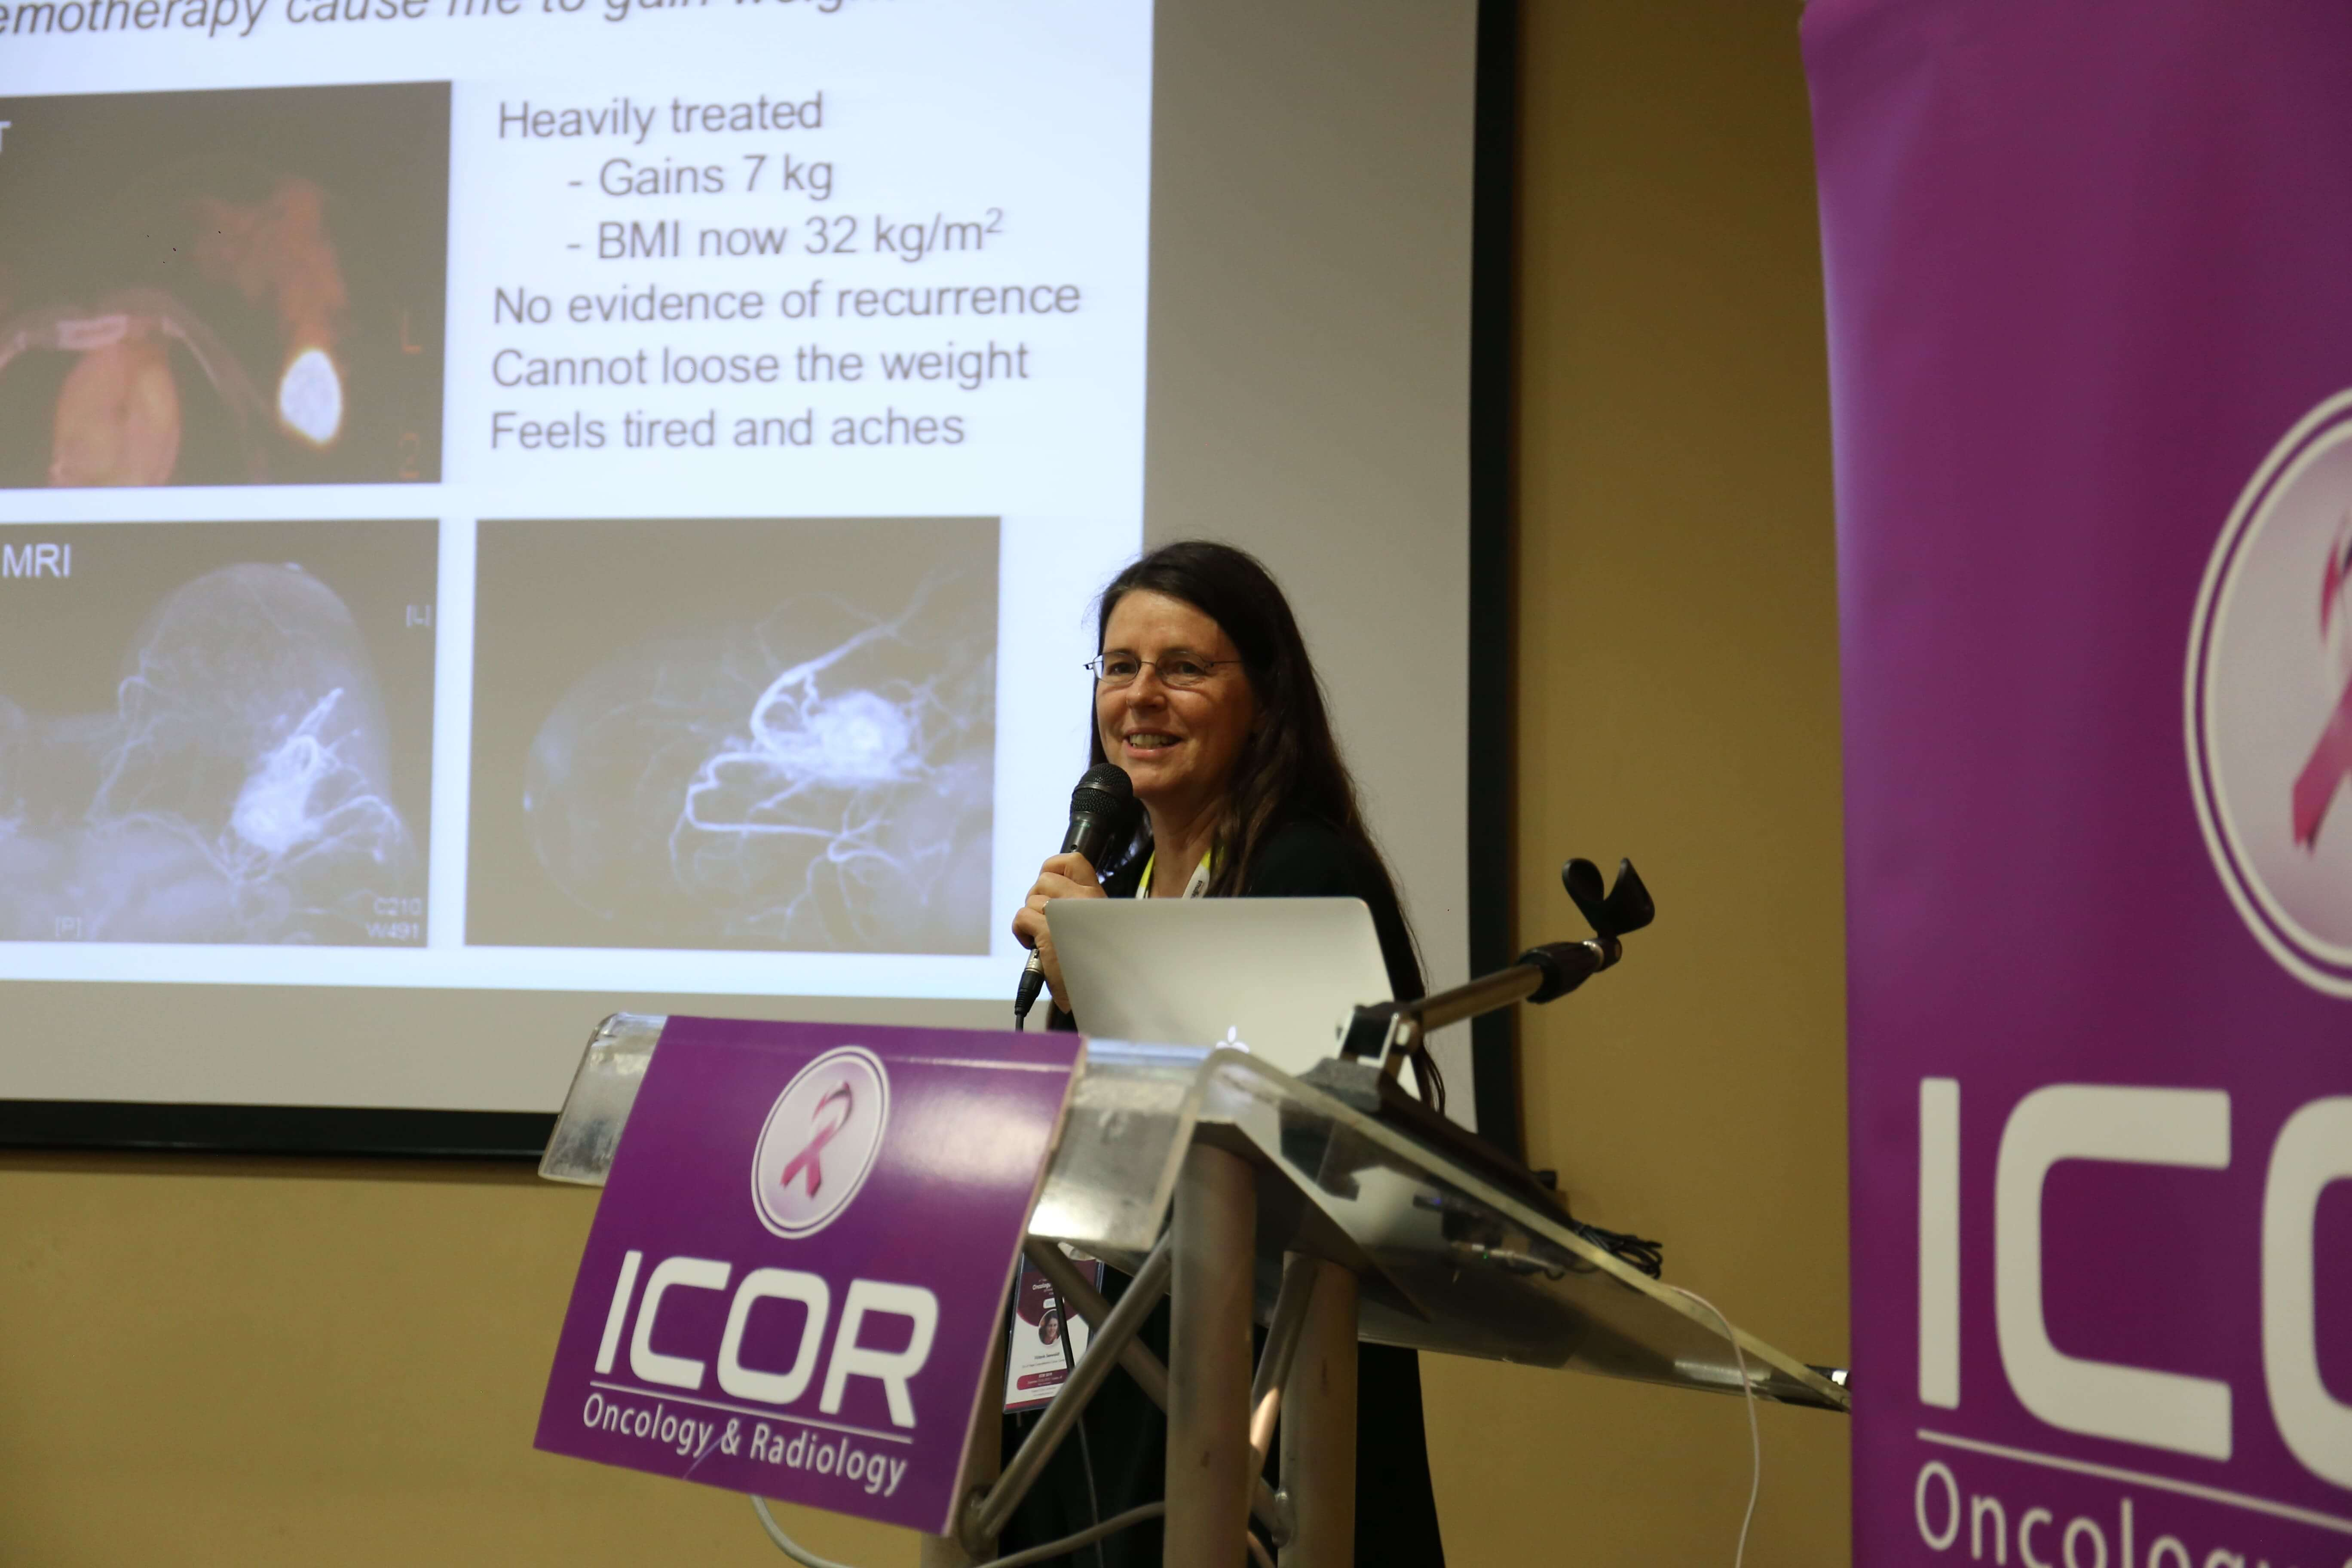 Cancer research conferences - Victoria Seewaldt